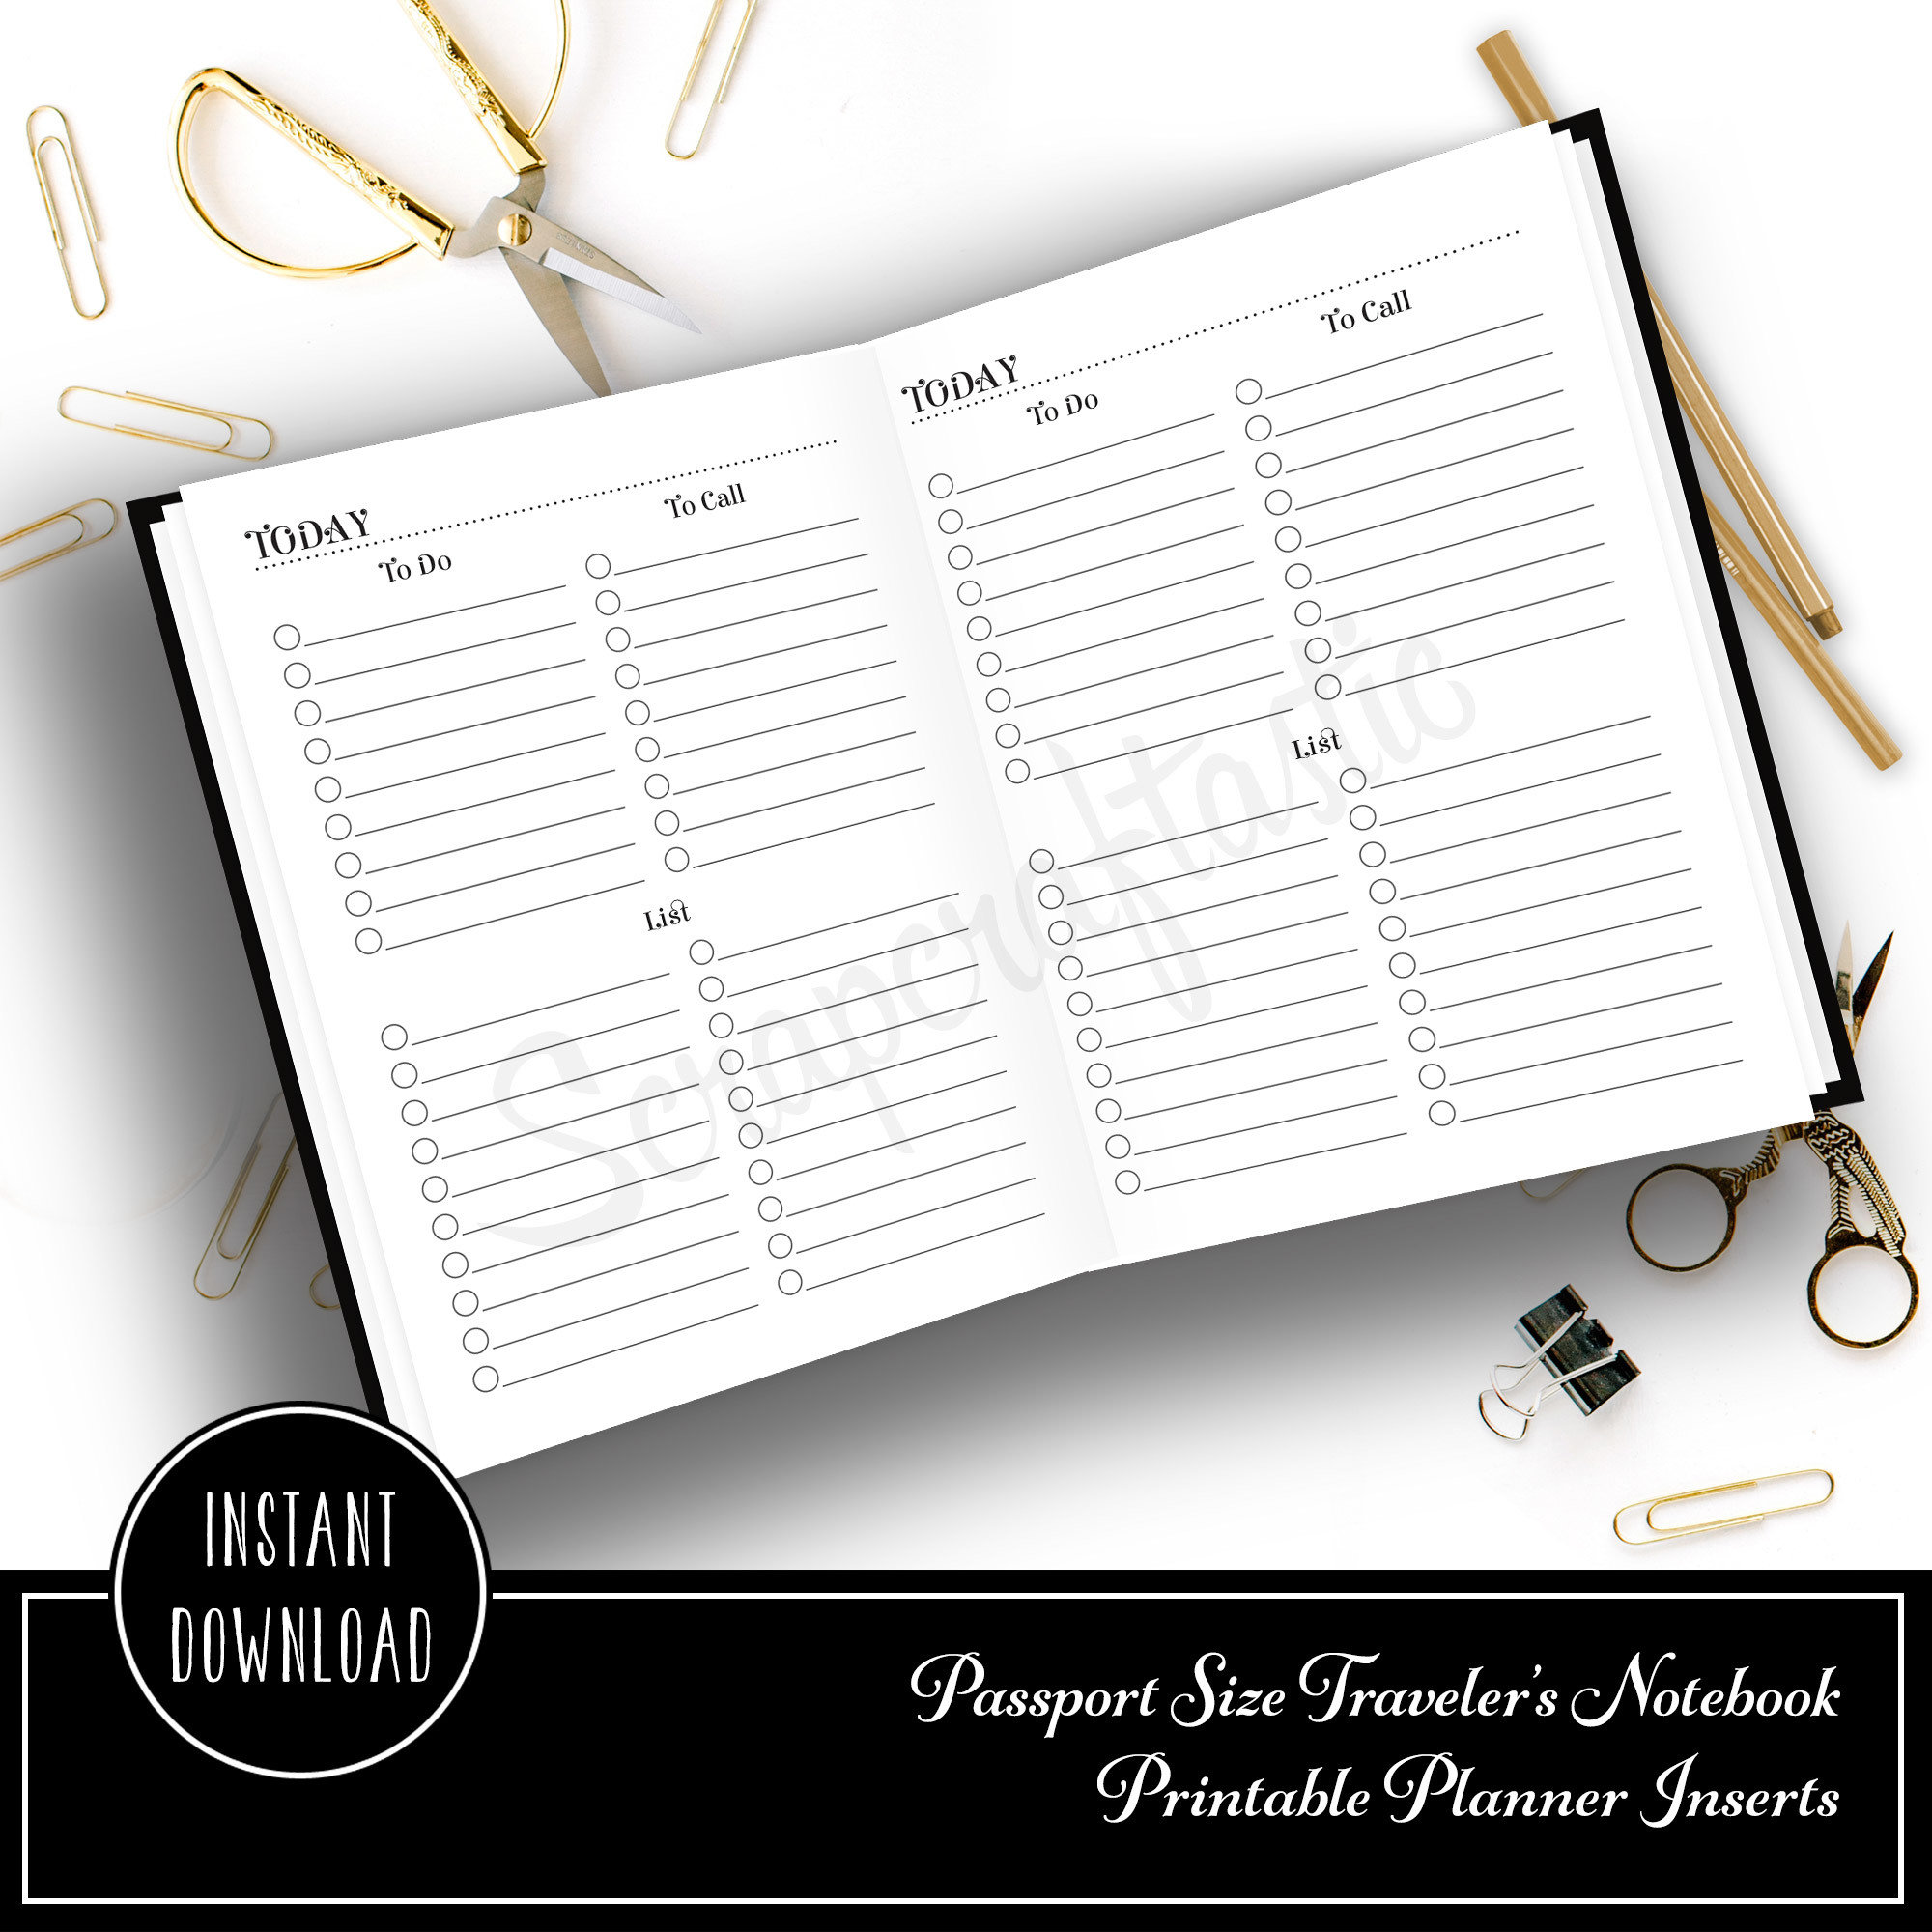 Multi List Passport Size Traveler's Notebook Printable Planner Inserts 90006